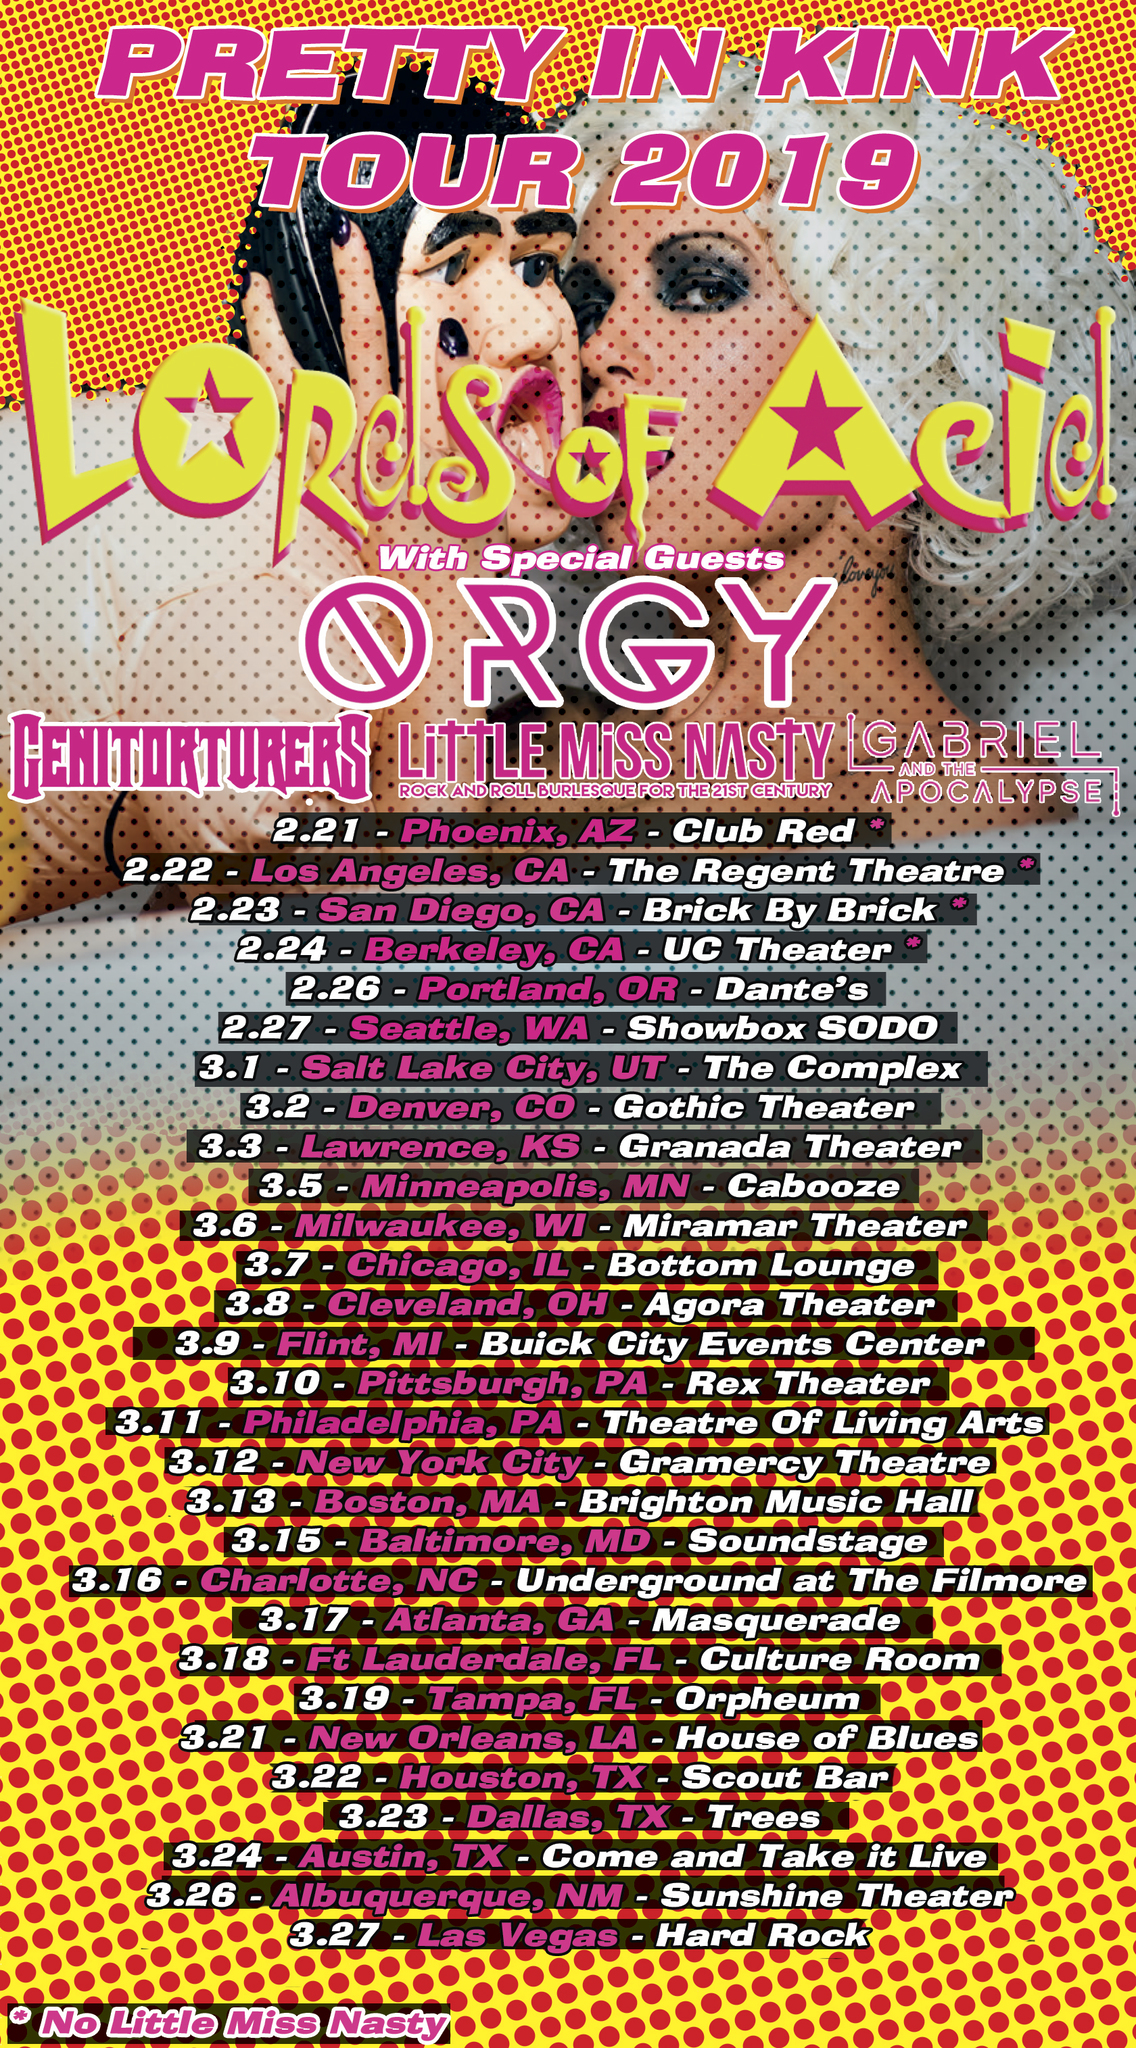 Win Tickets to the Pretty in Kink Tour, Featuring Lords of Acid and Orgy  !